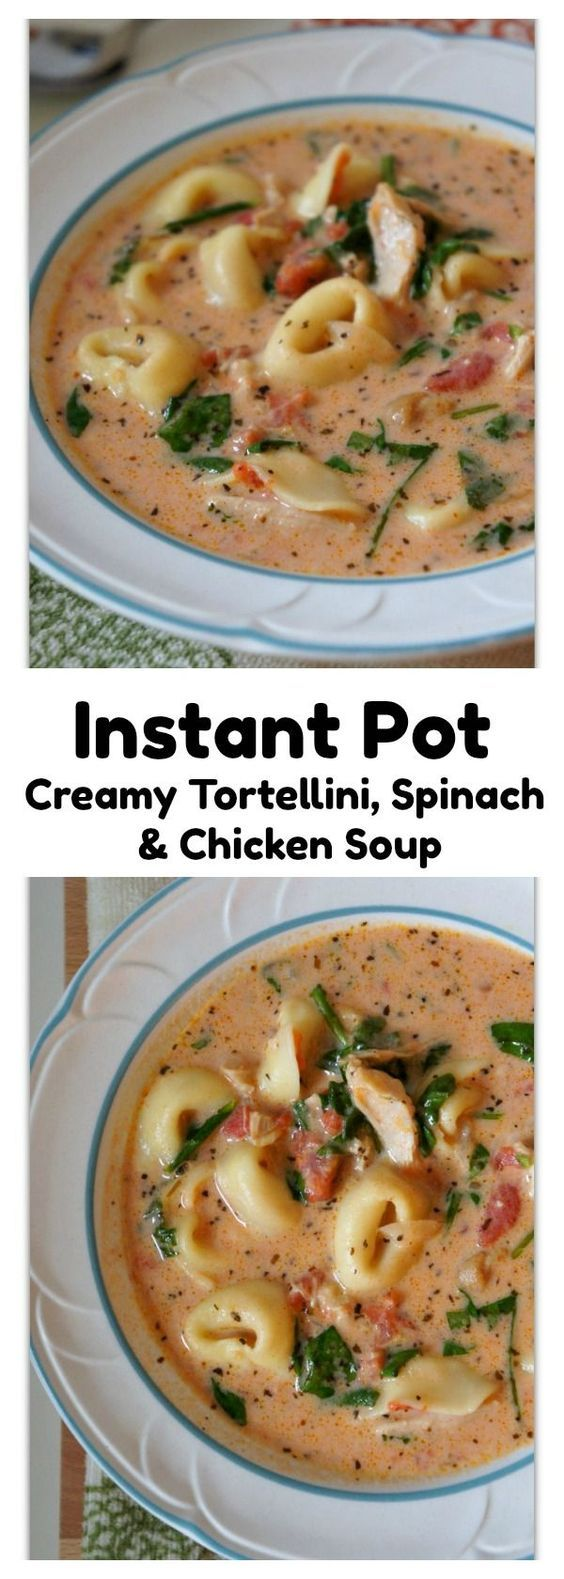 Instant Pot Creamy Tortellini, Spinach and Chicken Soup–creamy tomato based soup with bites of tender chicken, cheesy tortellini and fresh bright green spinach. This version is made in the electric pressure cooker and is a quick and easy one pot meal. Everyone in my house loves this soup and I love making it for friends too. I've never heard a complaint when I've made this soup!